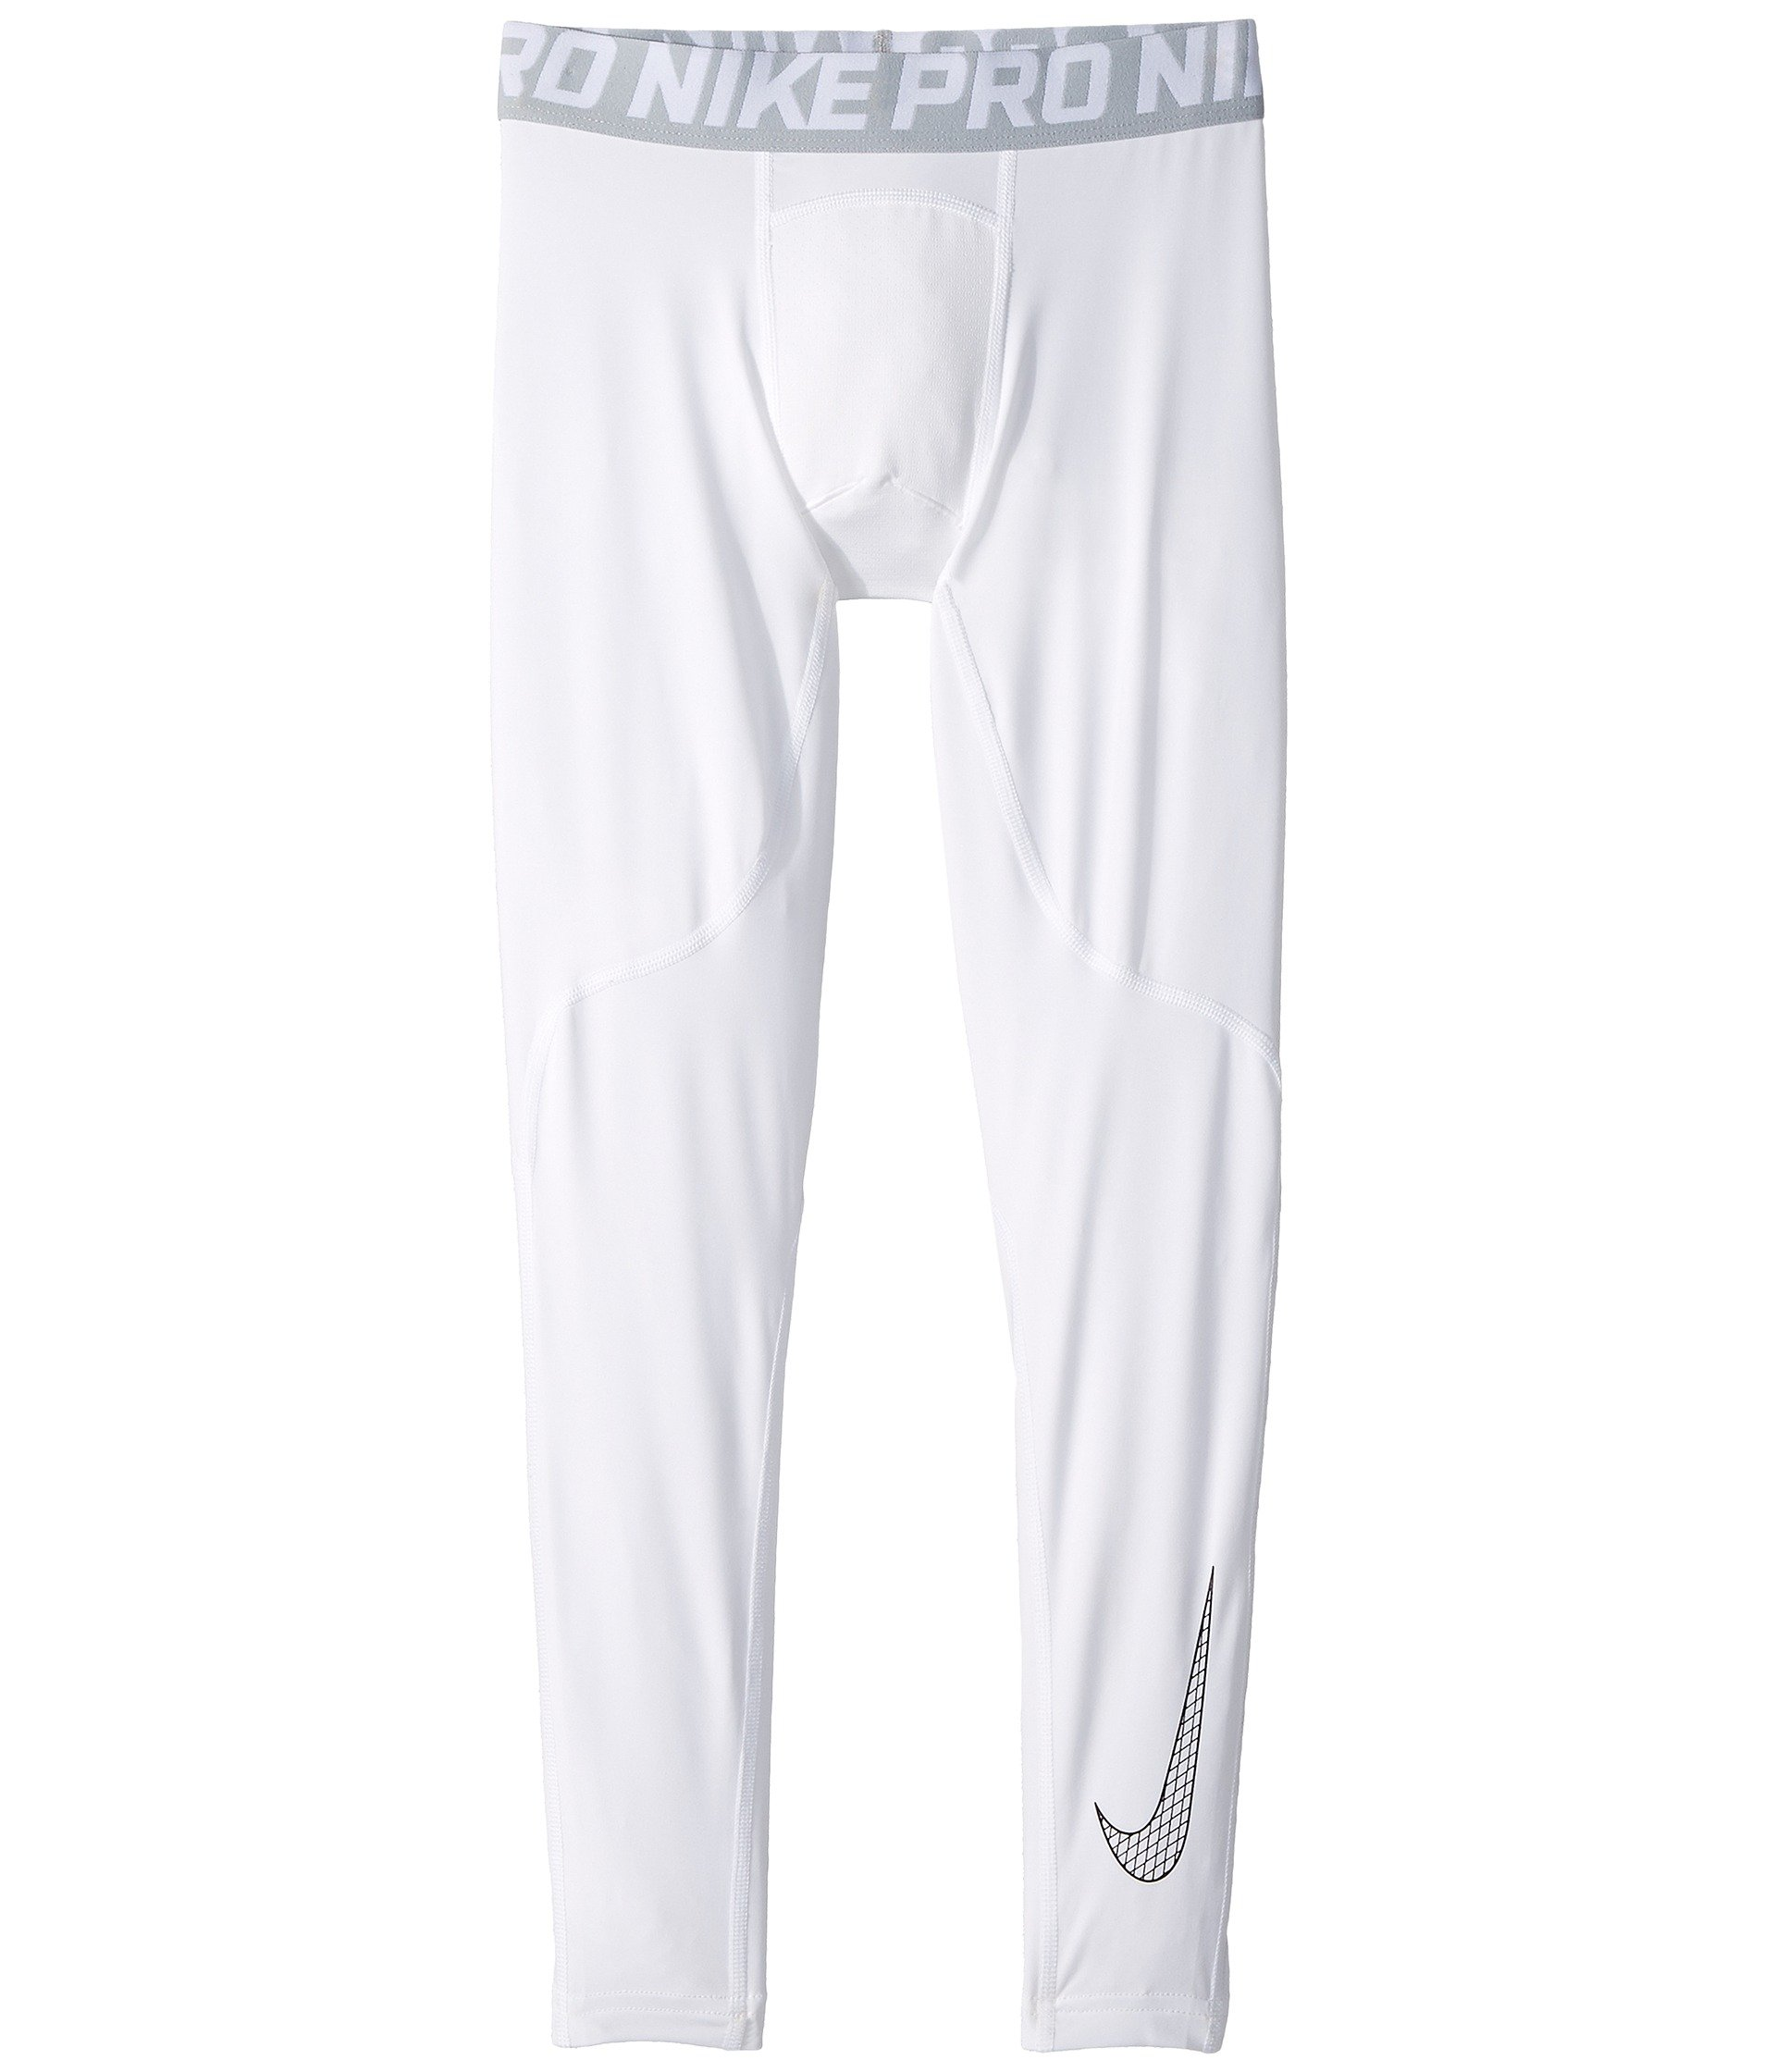 Nike Boy's Pro Tights White/Wolf Grey Size X-Large by Nike